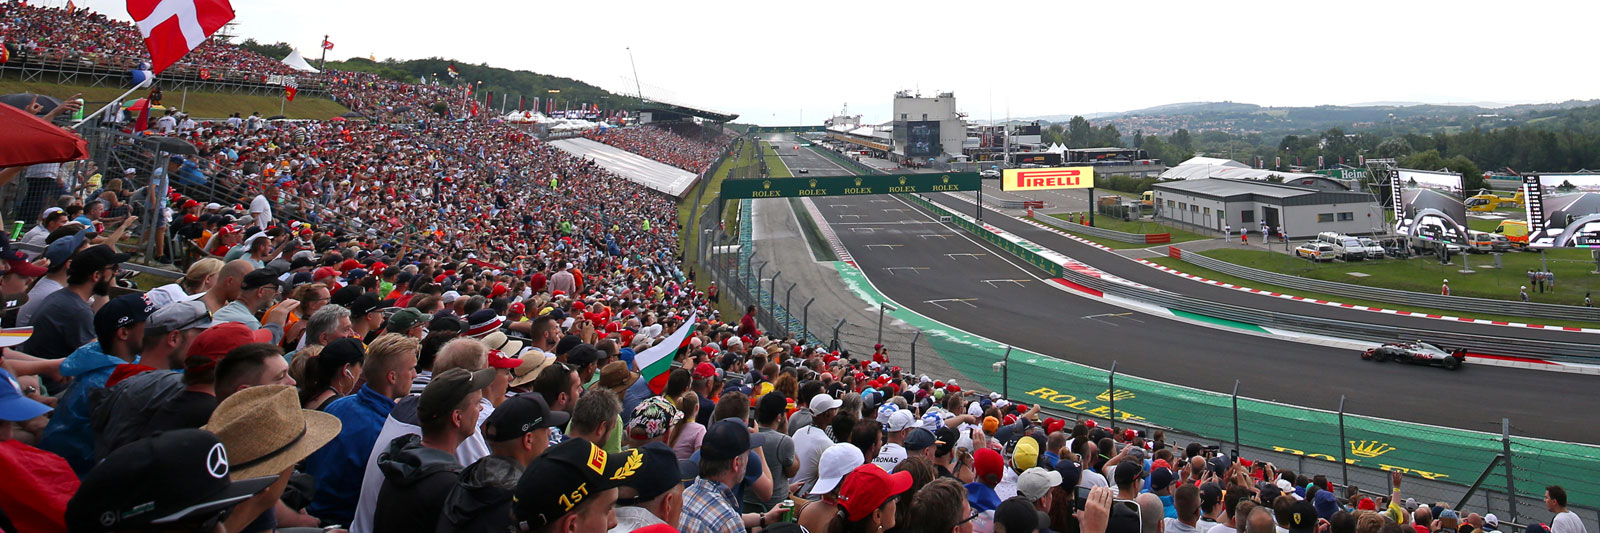 Hungarian Grand Prix with Grand Prix Tours